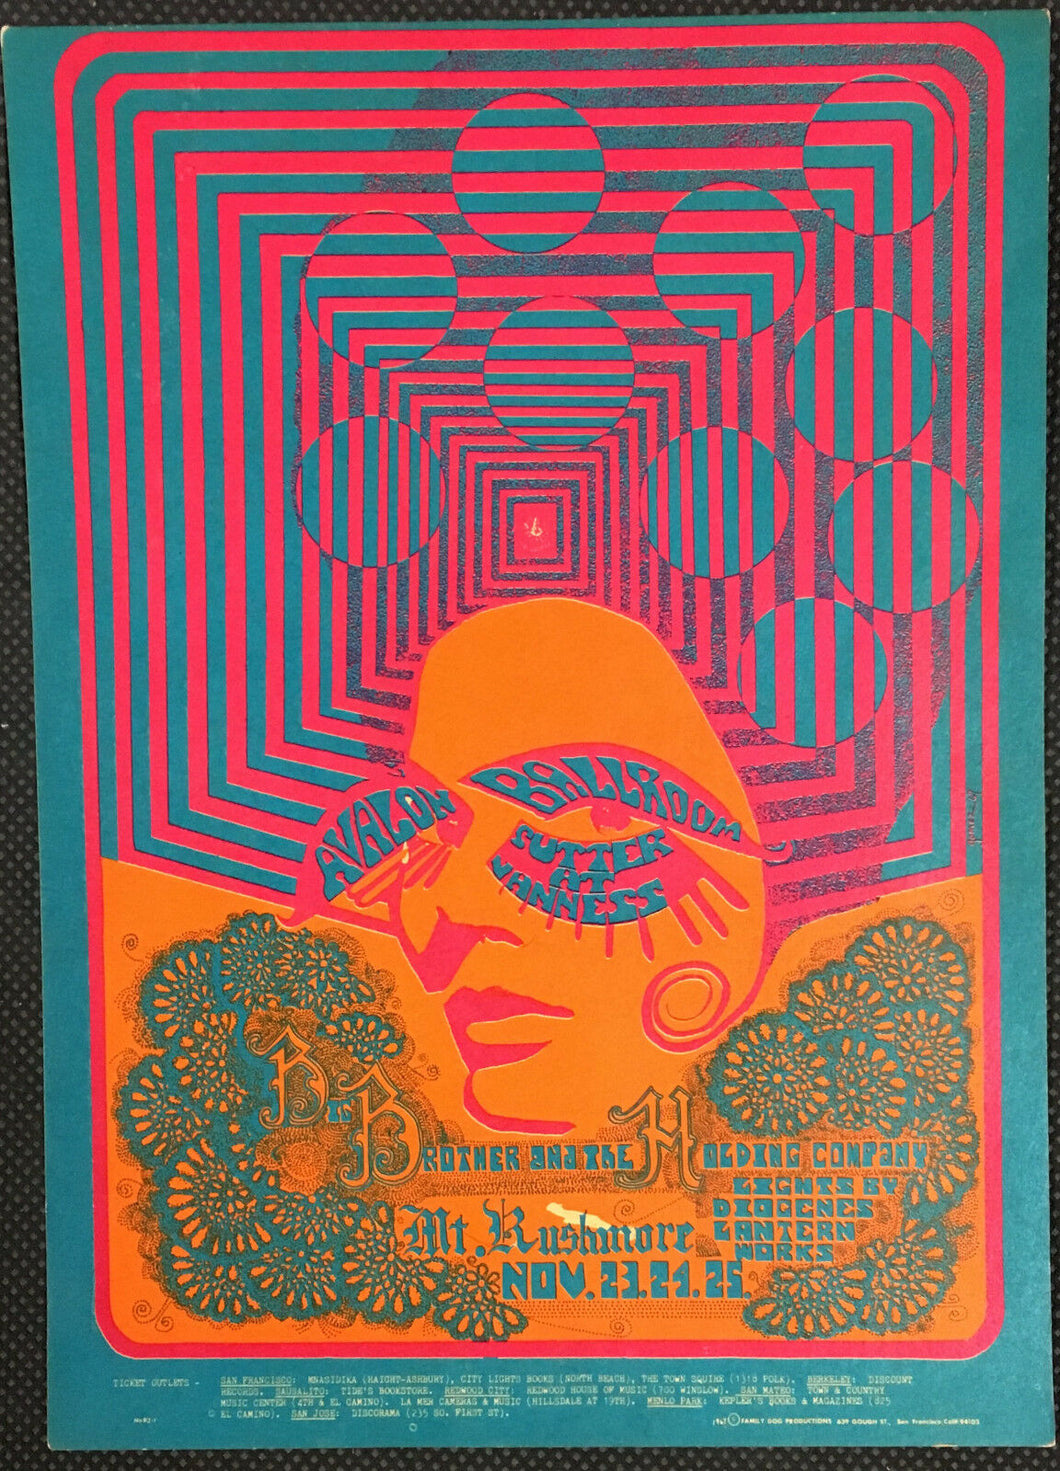 1967 Big Brother & The Holding Company Handbill Postcard Concert Avalon Ballroom